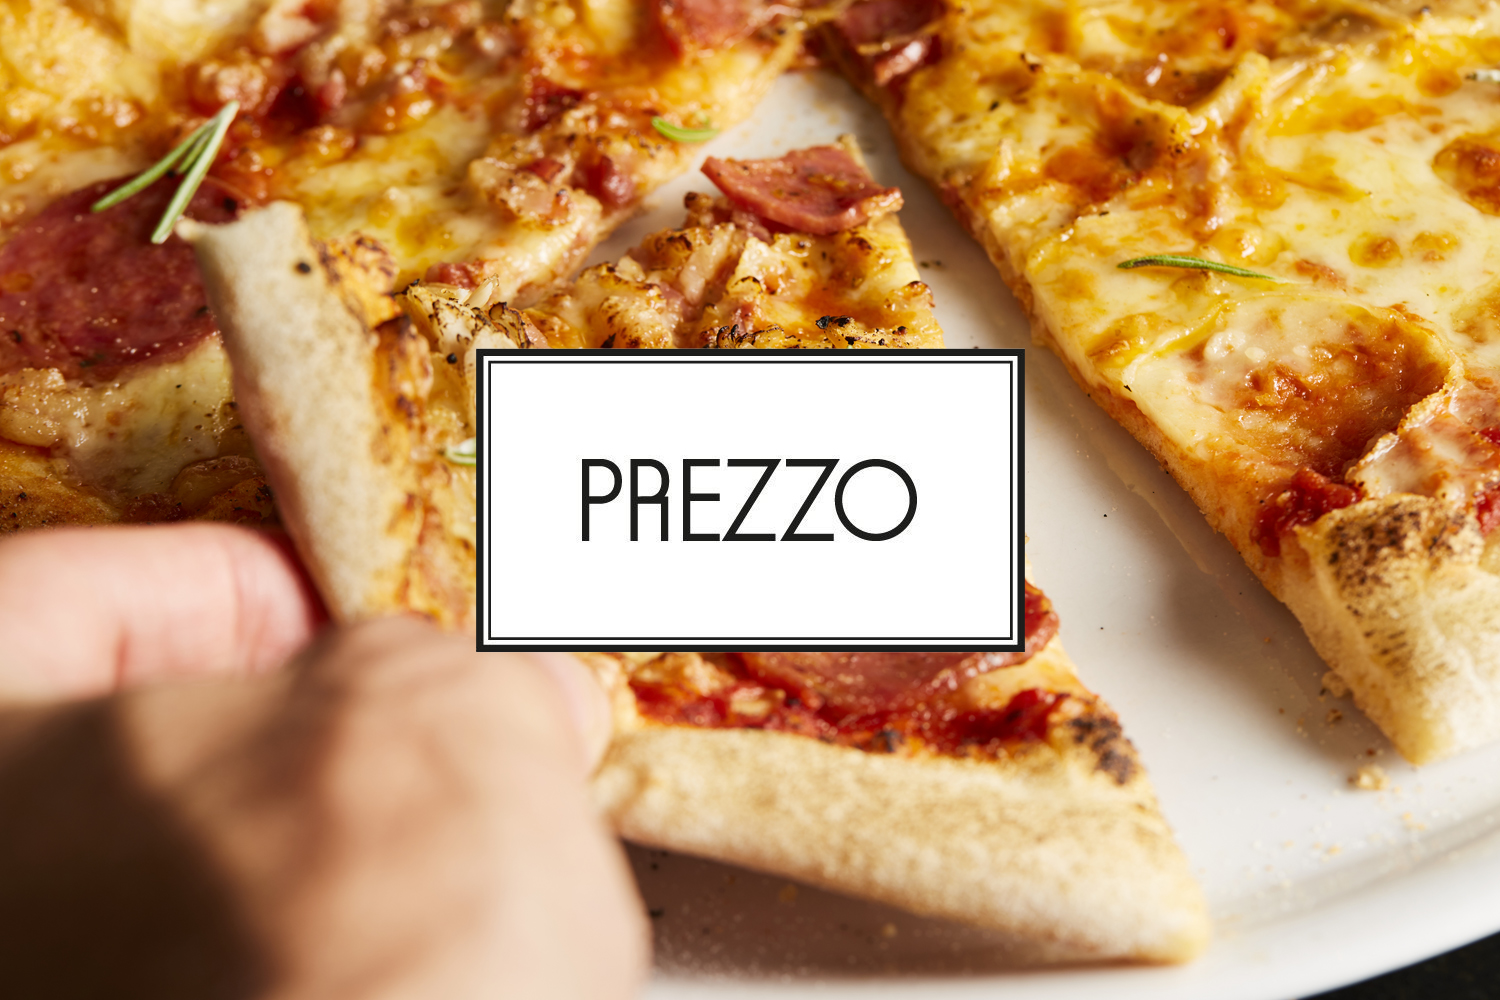 25% off your bill at Prezzo